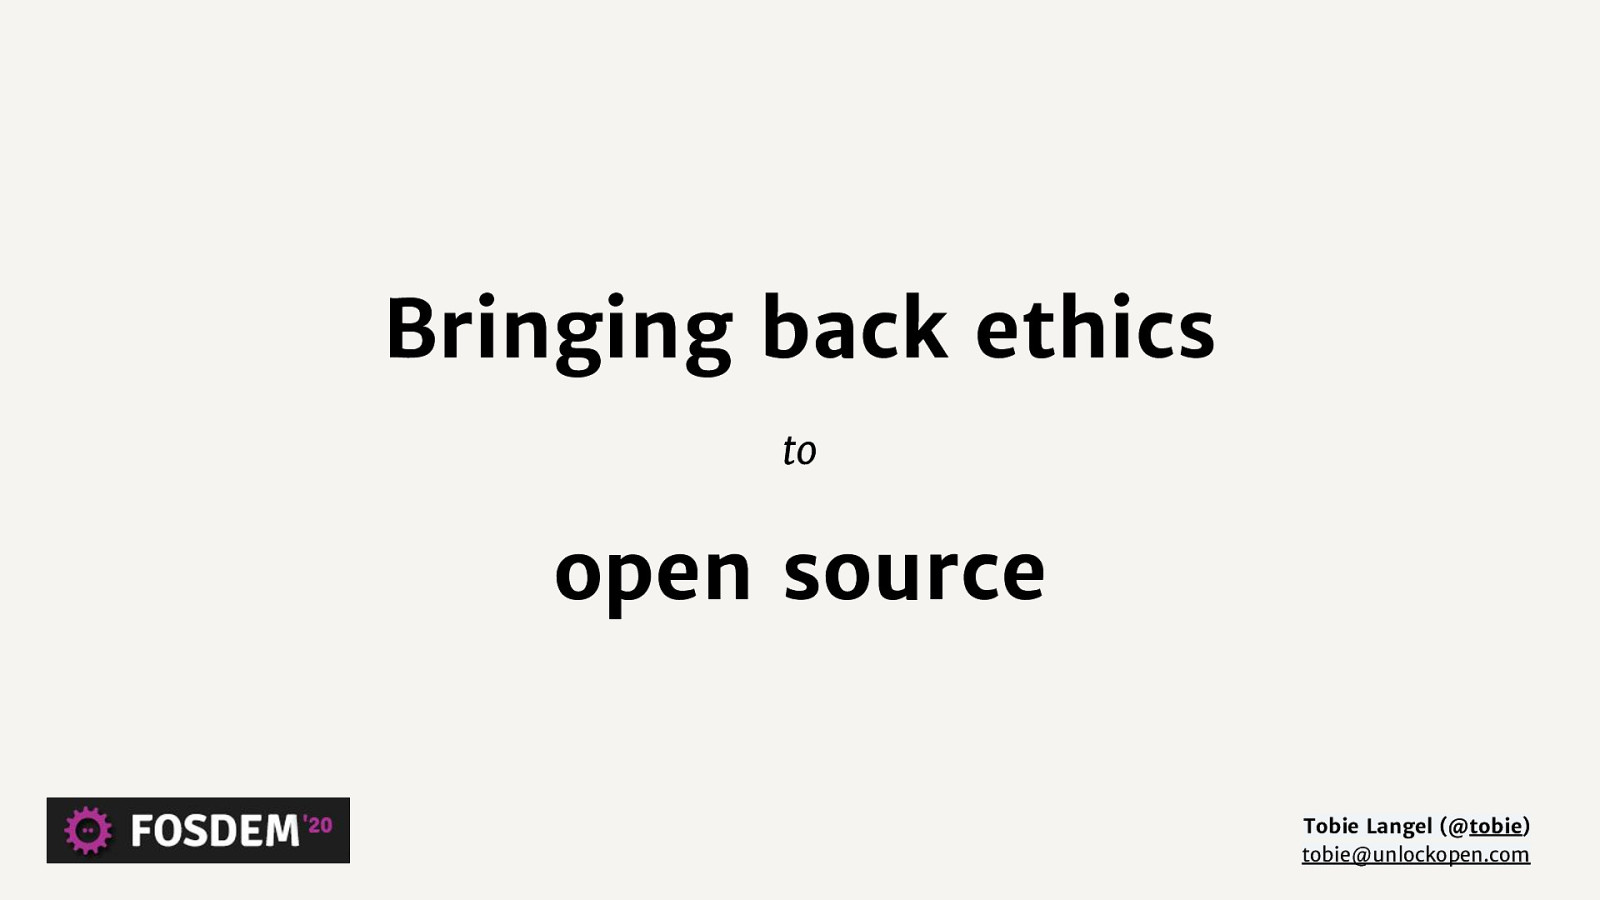 Bringing ethics back to open source